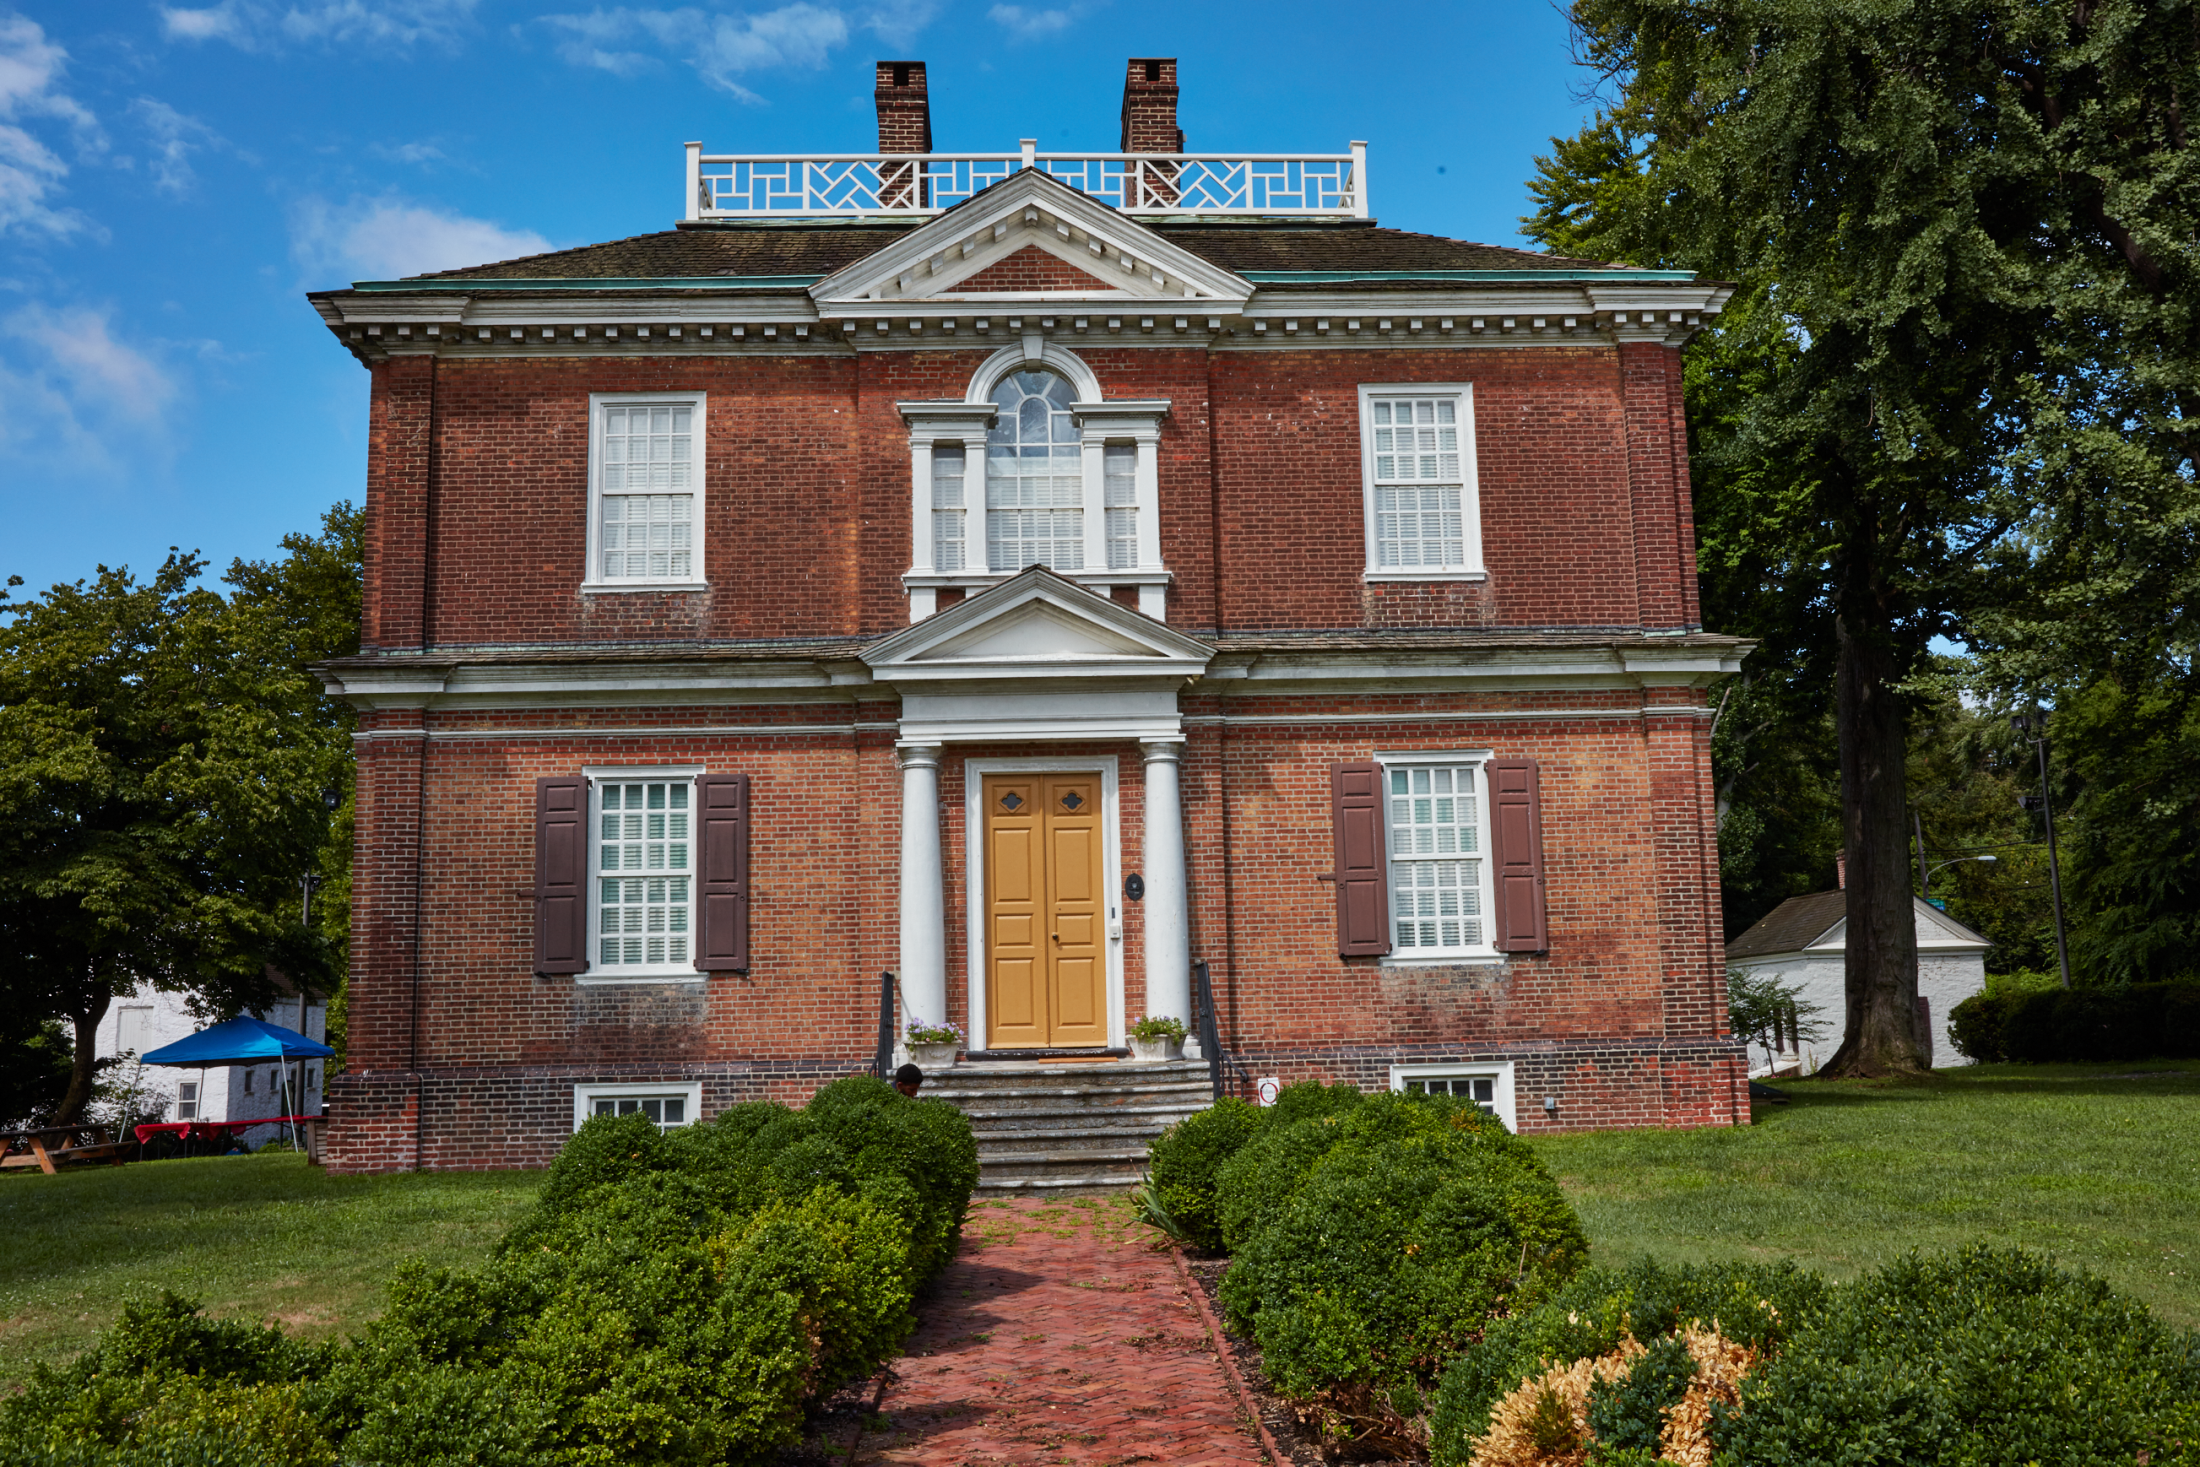 Art and Documentary Photography - Loading 04-08-18_WoodfordMansion-PeachFestival_001.png